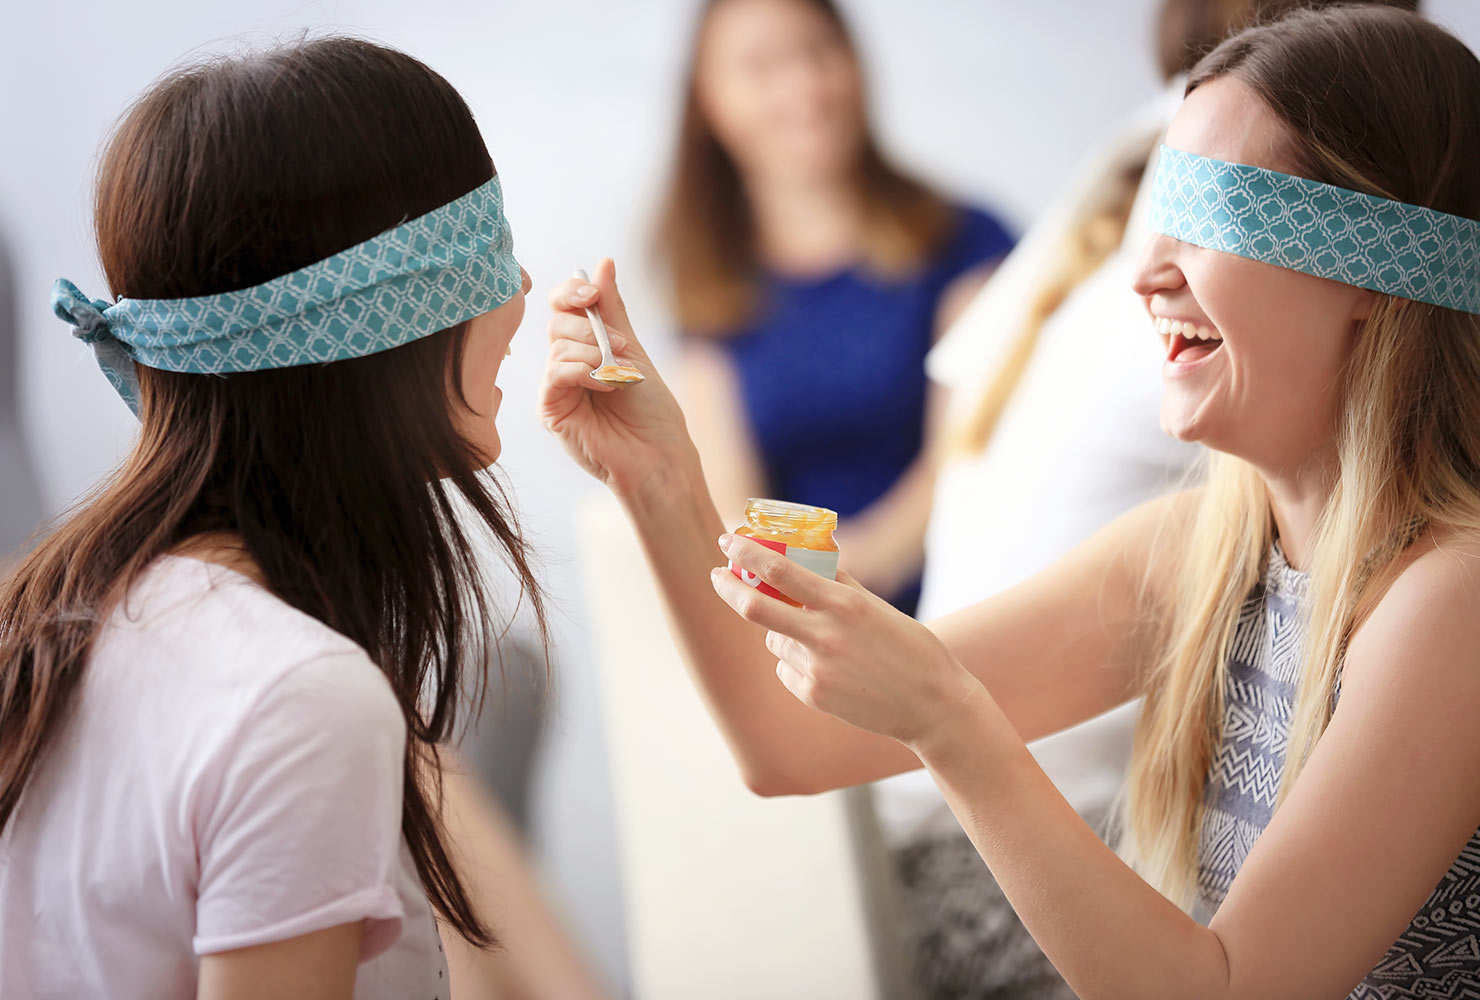 women taste testing baby food at a baby shower.